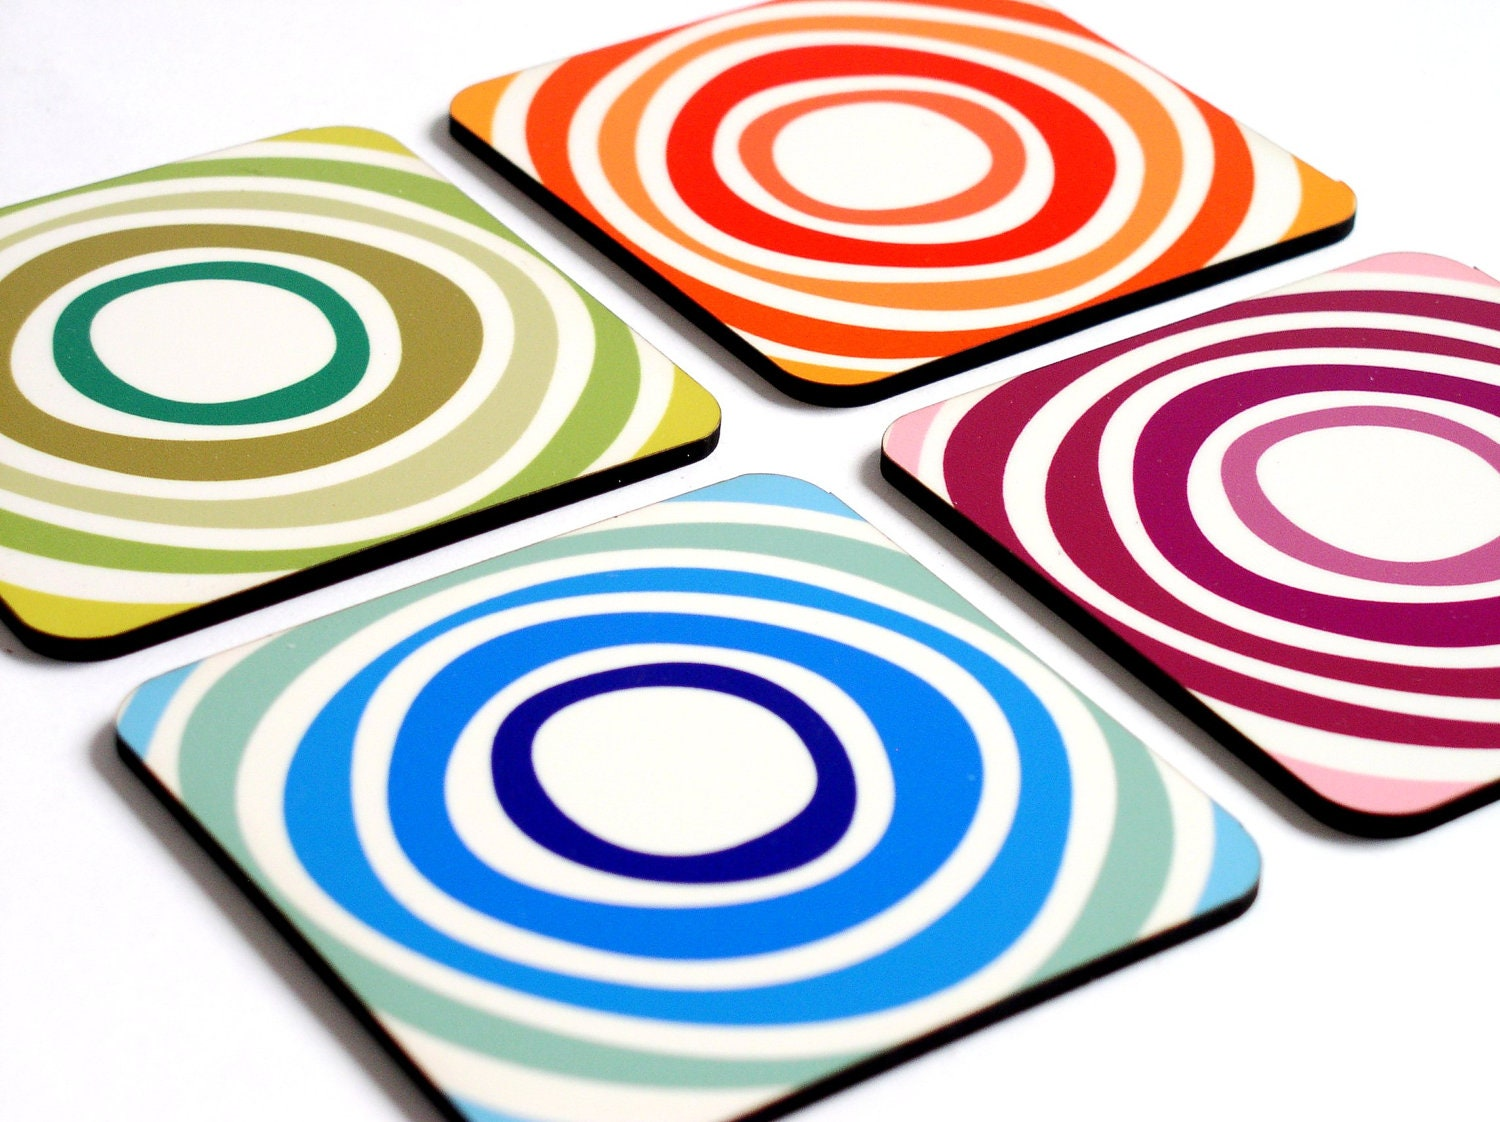 Drink Coasters Modern Geometric Abstract Design By